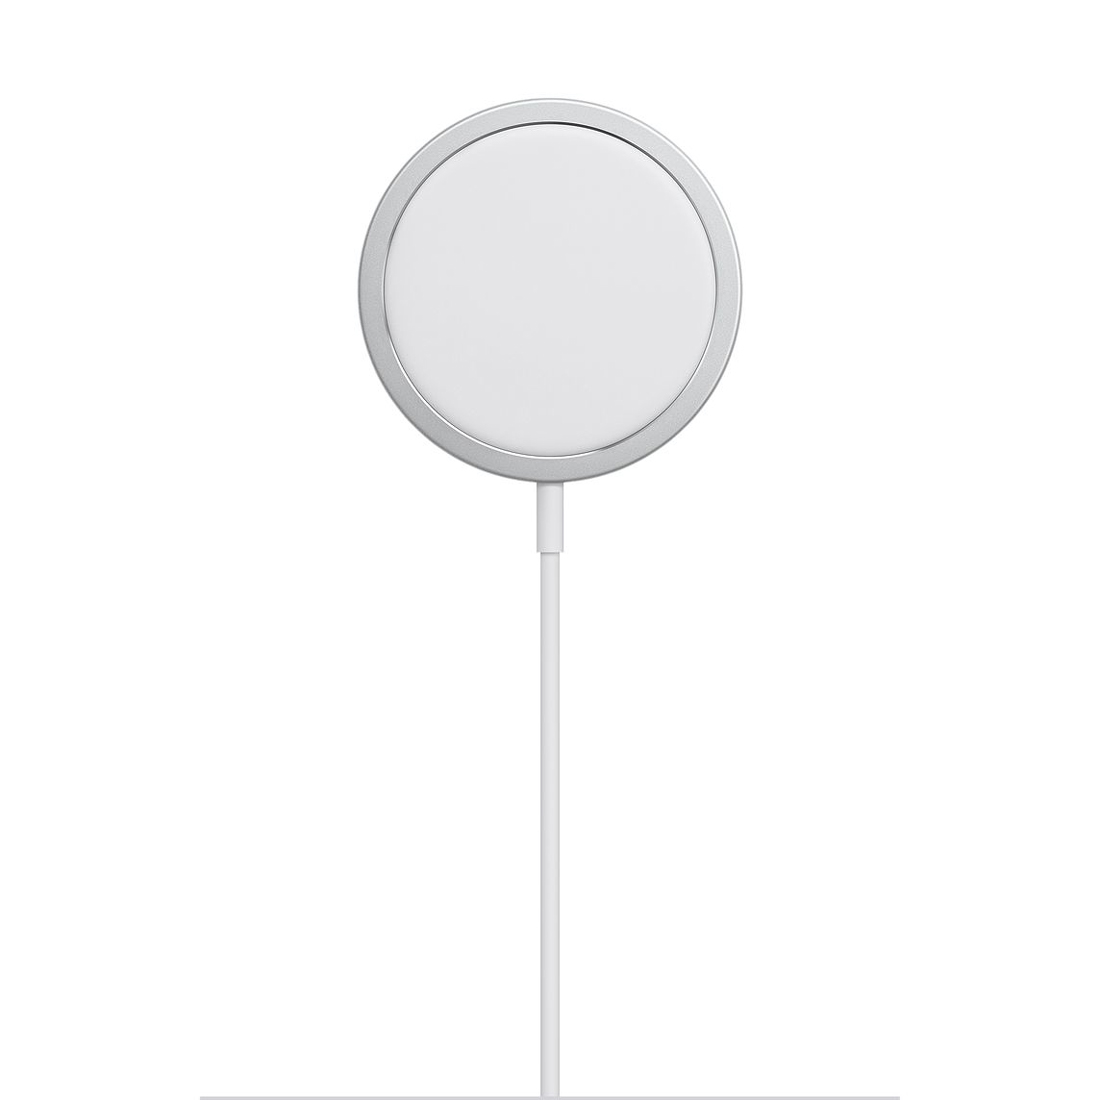 main images شارژر مگ سیف اپل Apple MagSafe Charger